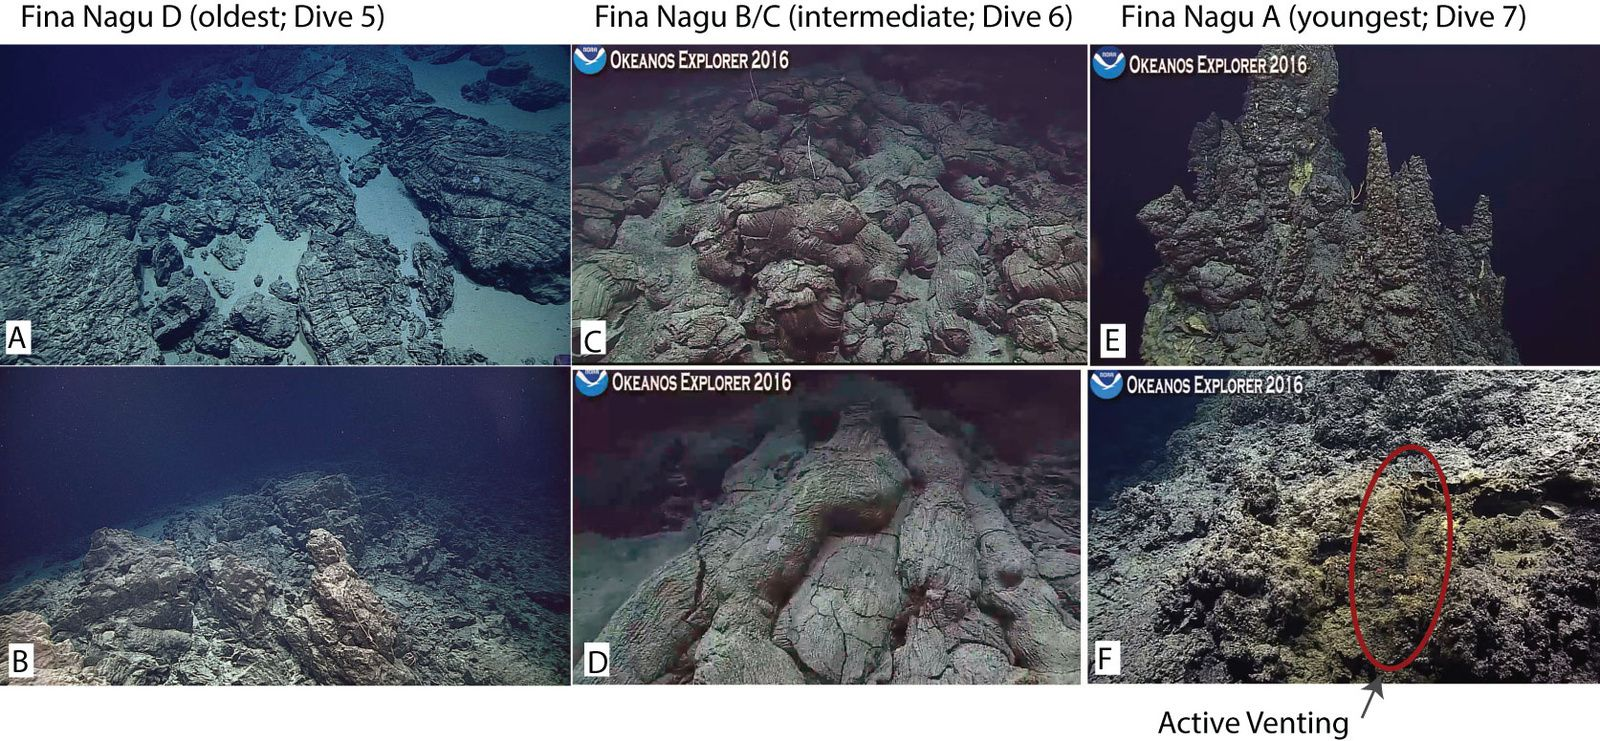 The seafloor photographed during dives 5-7: The north wall of the caldera D consists of pillow lava fractured and clear sediment (photo A) and dykes (photo B) - The dorsal between calderas B and C consists of pillow lava well preserved (picture C), some form tubes along the slopes (photo D) - the East resurgent dome of the caldera at present a large extinct hydrothermal vent (top photo E), and a light flux hydrothermal on the west (photo F) dome - Image courtesy of NOAA Office of Ocean Exploration and Research, 2016 Deepwater Exploration of the Marianas